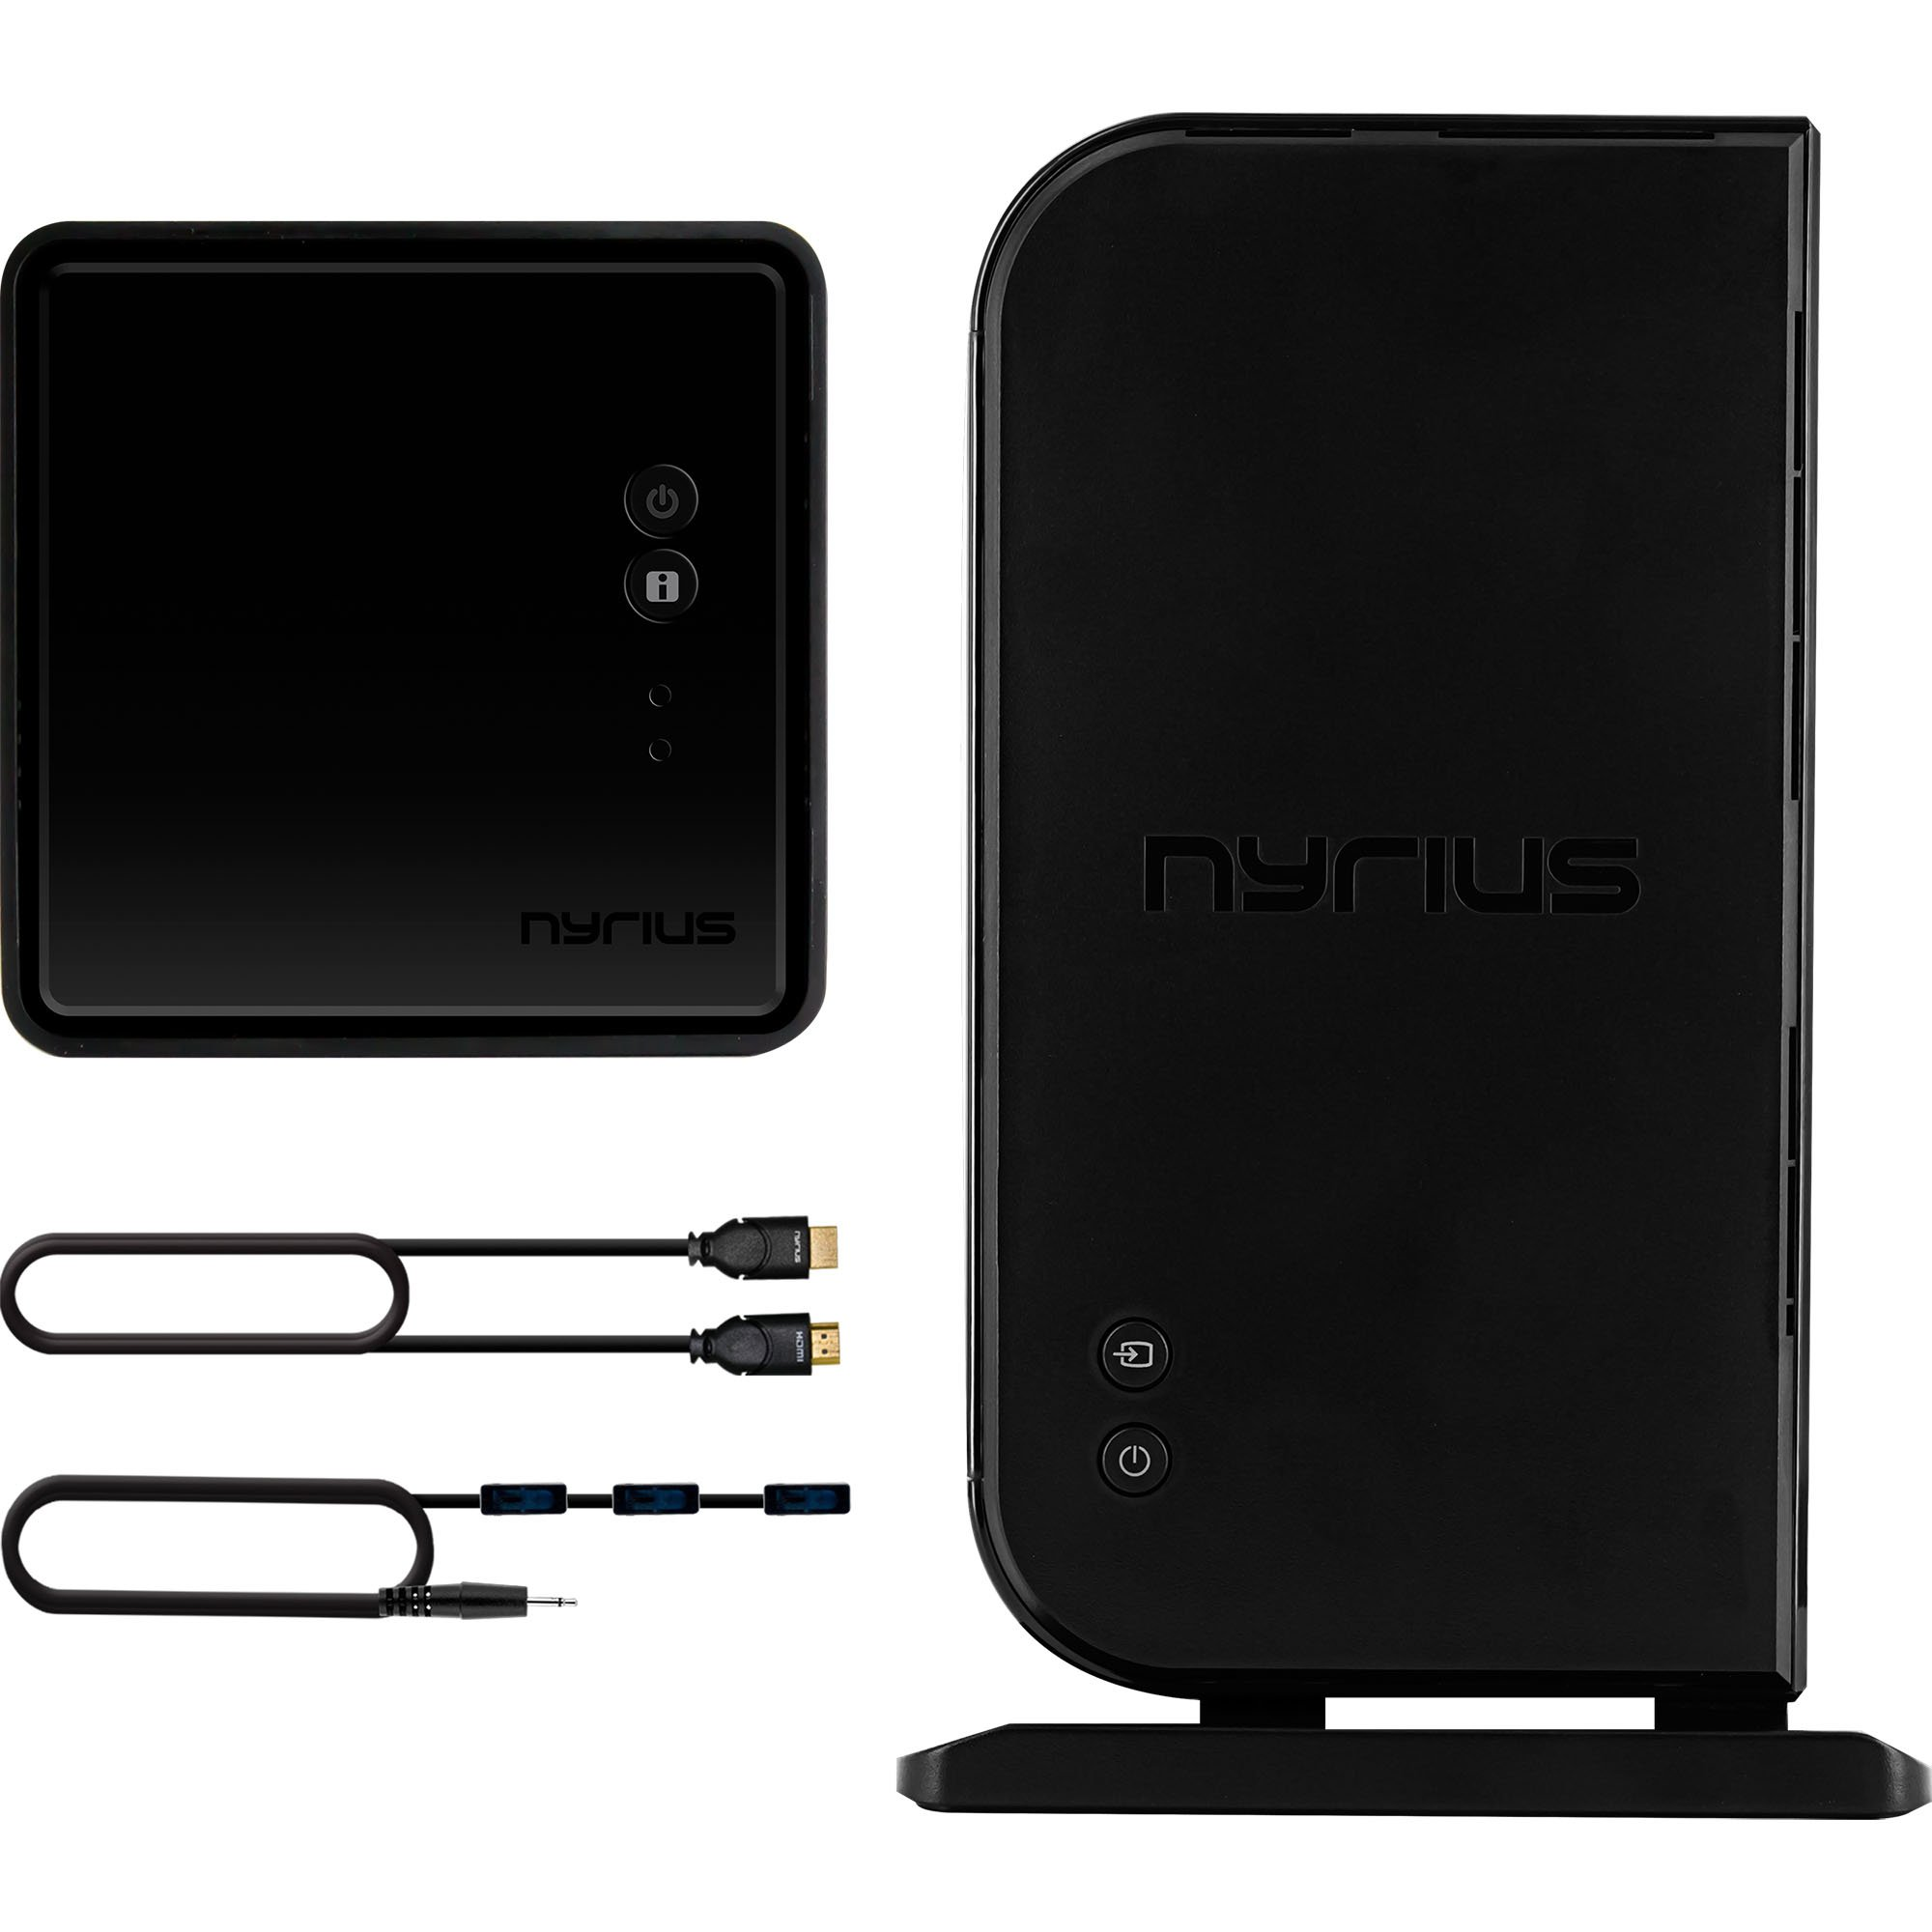 Nyrius ARIES Home HDMI Digital Wireless Transmitter & Receiver for HD 1080p Video Streaming with IR Remote Extender (NAVS500) - Includes HDMI to Micro HDMI F/M Adapter